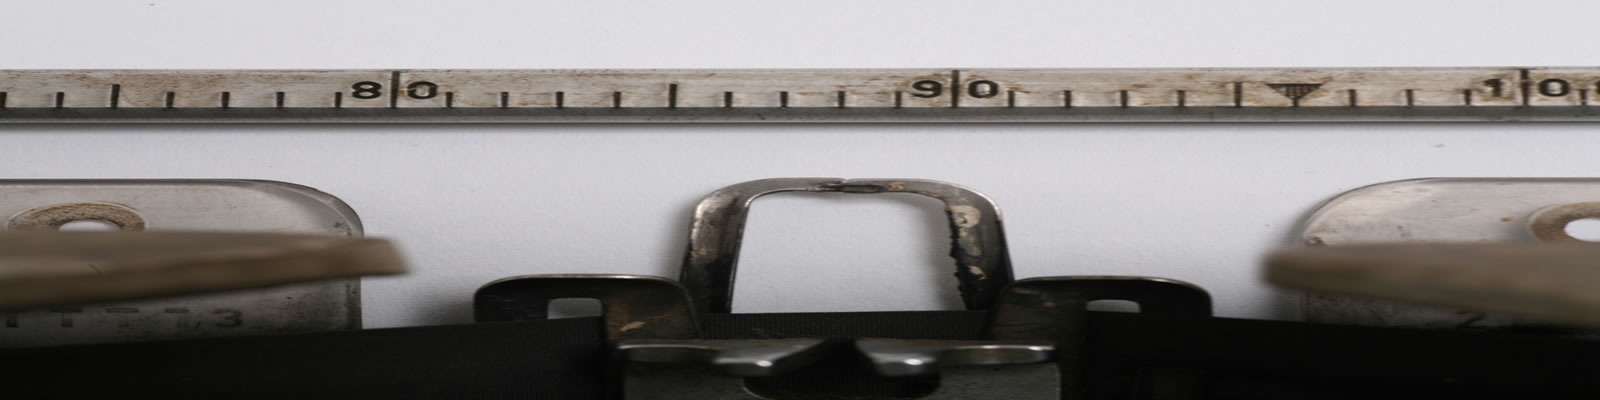 Close-up of a typewriter